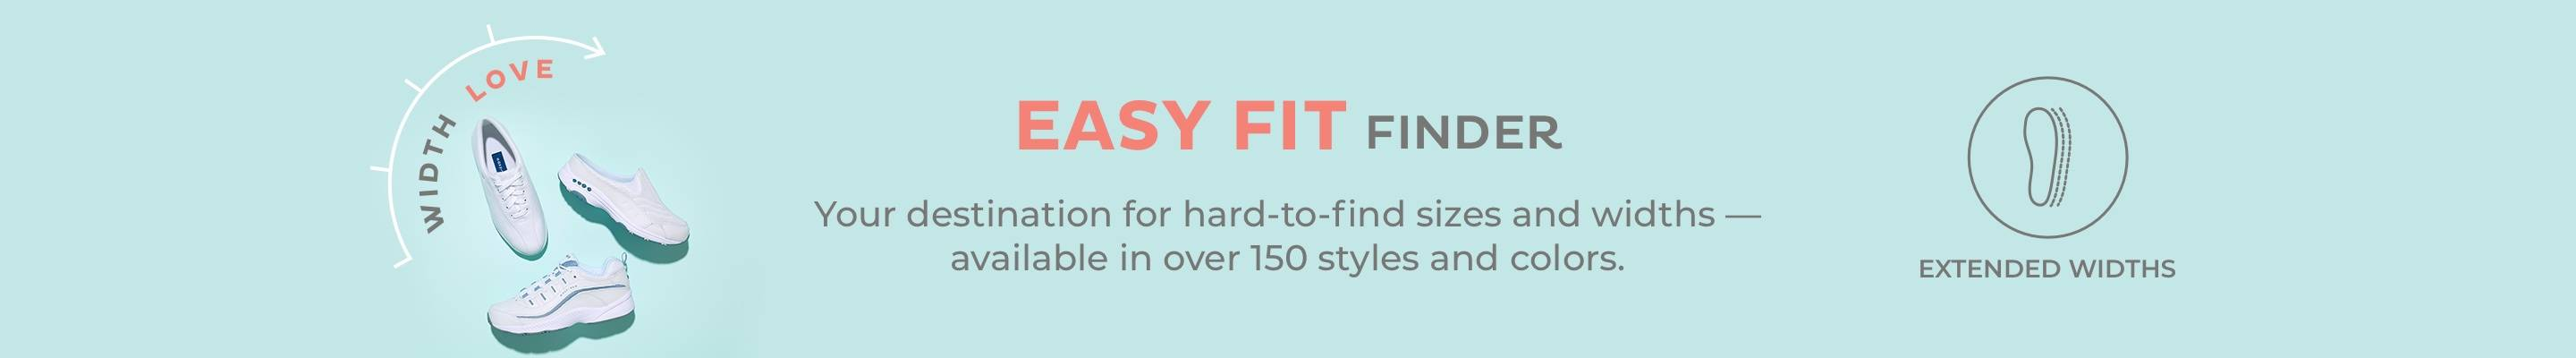 Easy Fit Finder